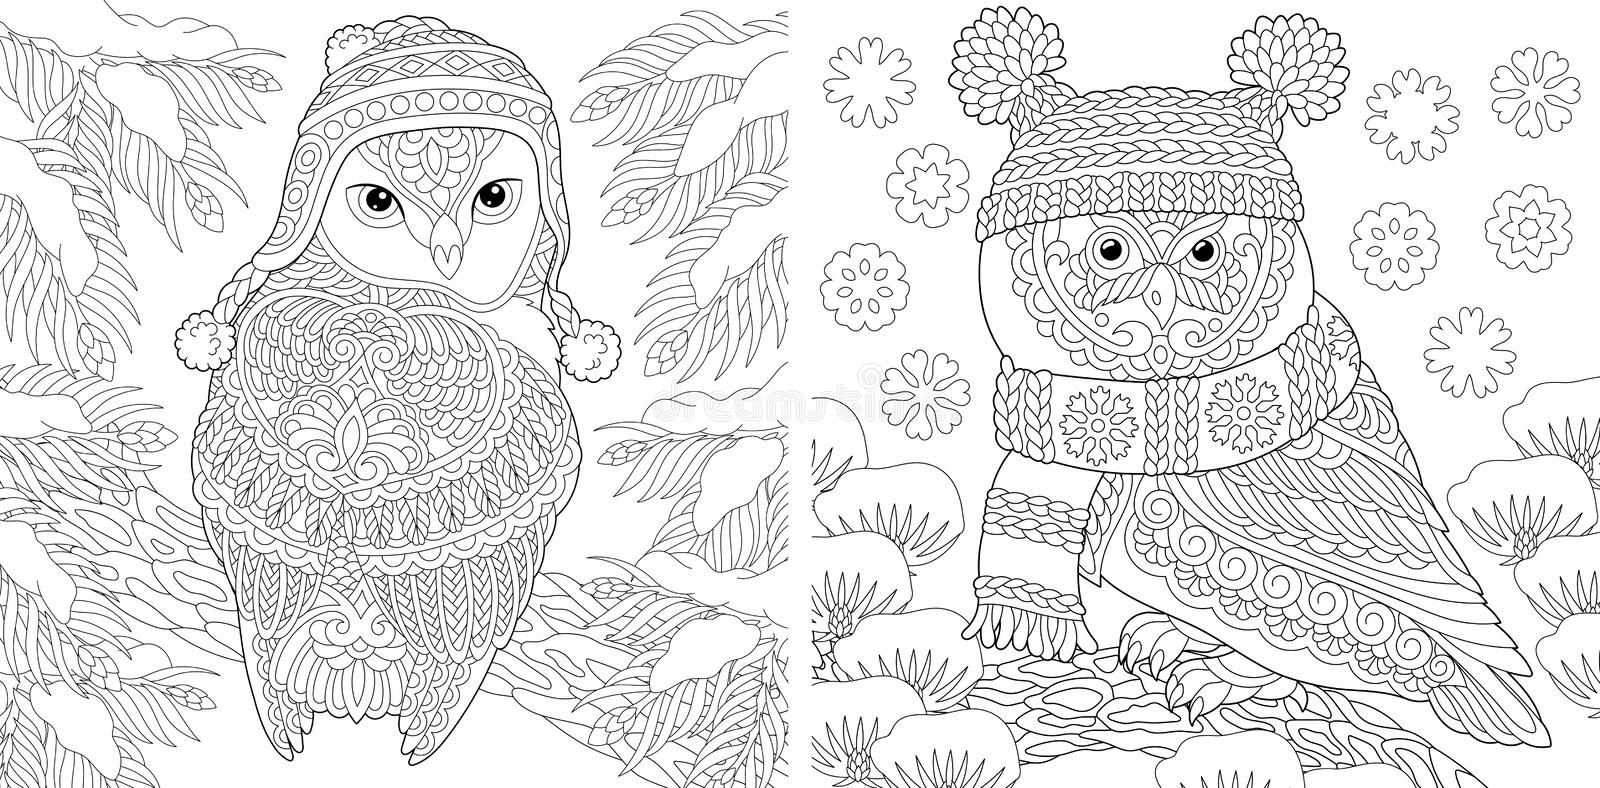 Winter Animals Coloring Pages - Free Printable Coloring Pages ... | 394x800